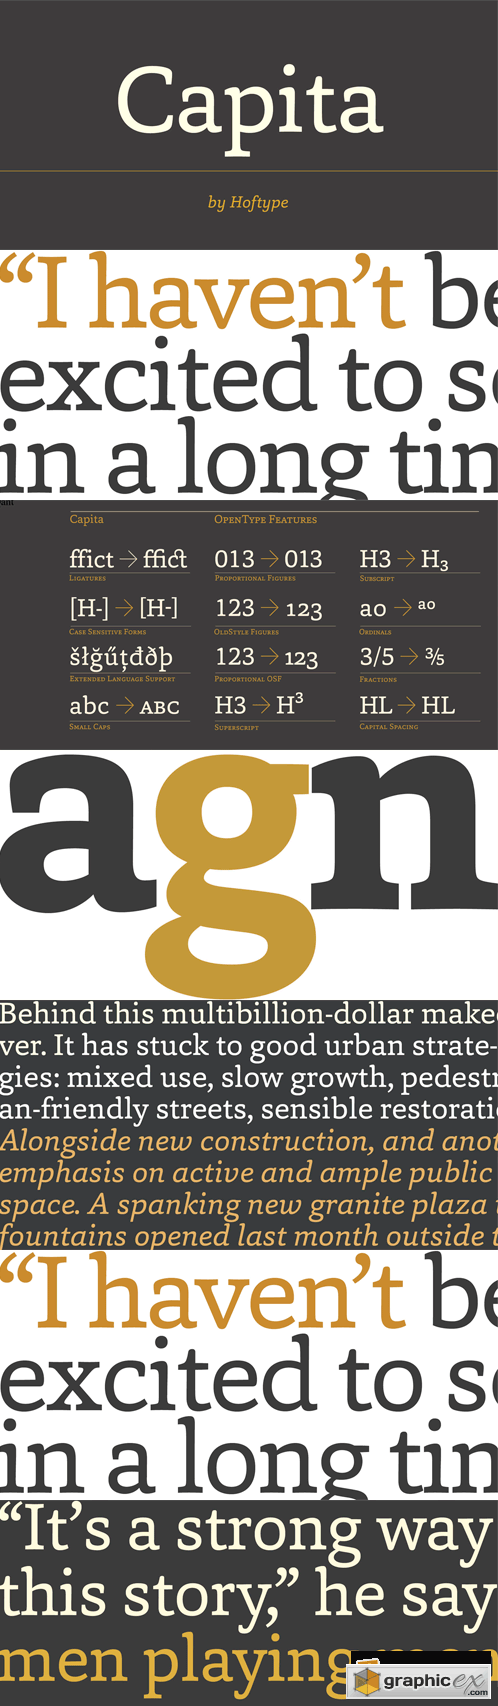 Capita Font Family - 12 Fonts for $198